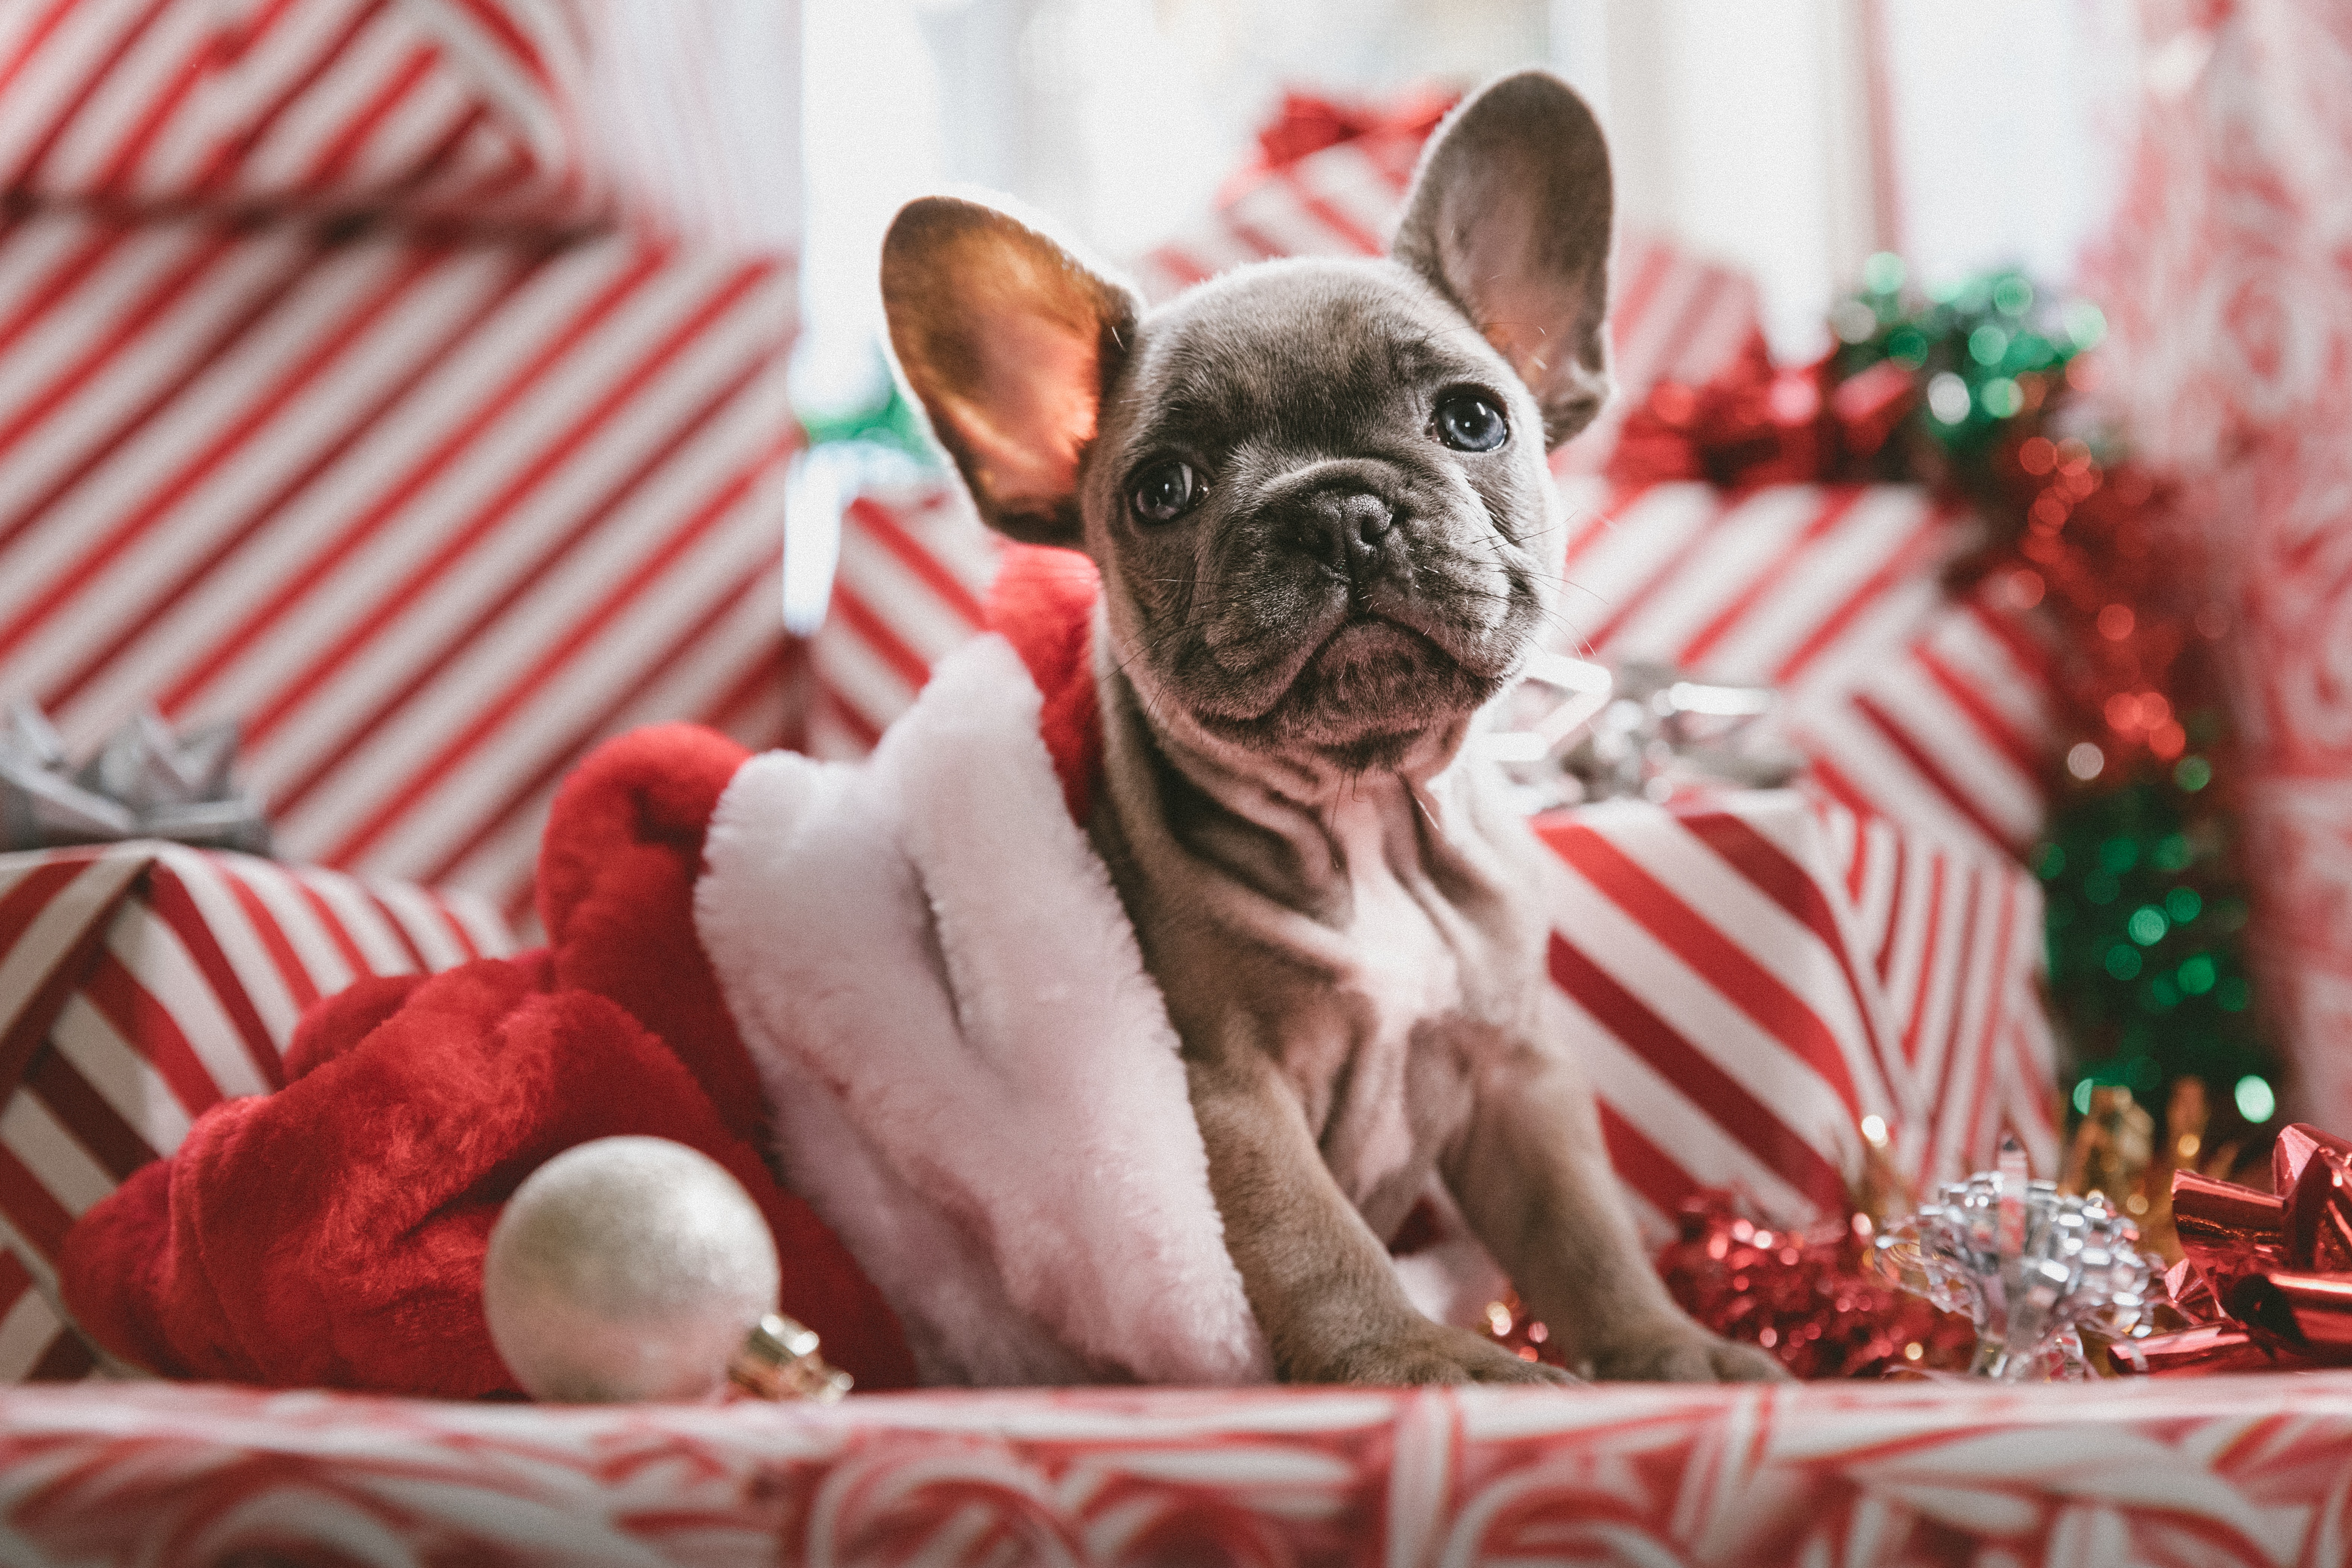 10 Adorable Pet-Friendly Gifts from The Food Network